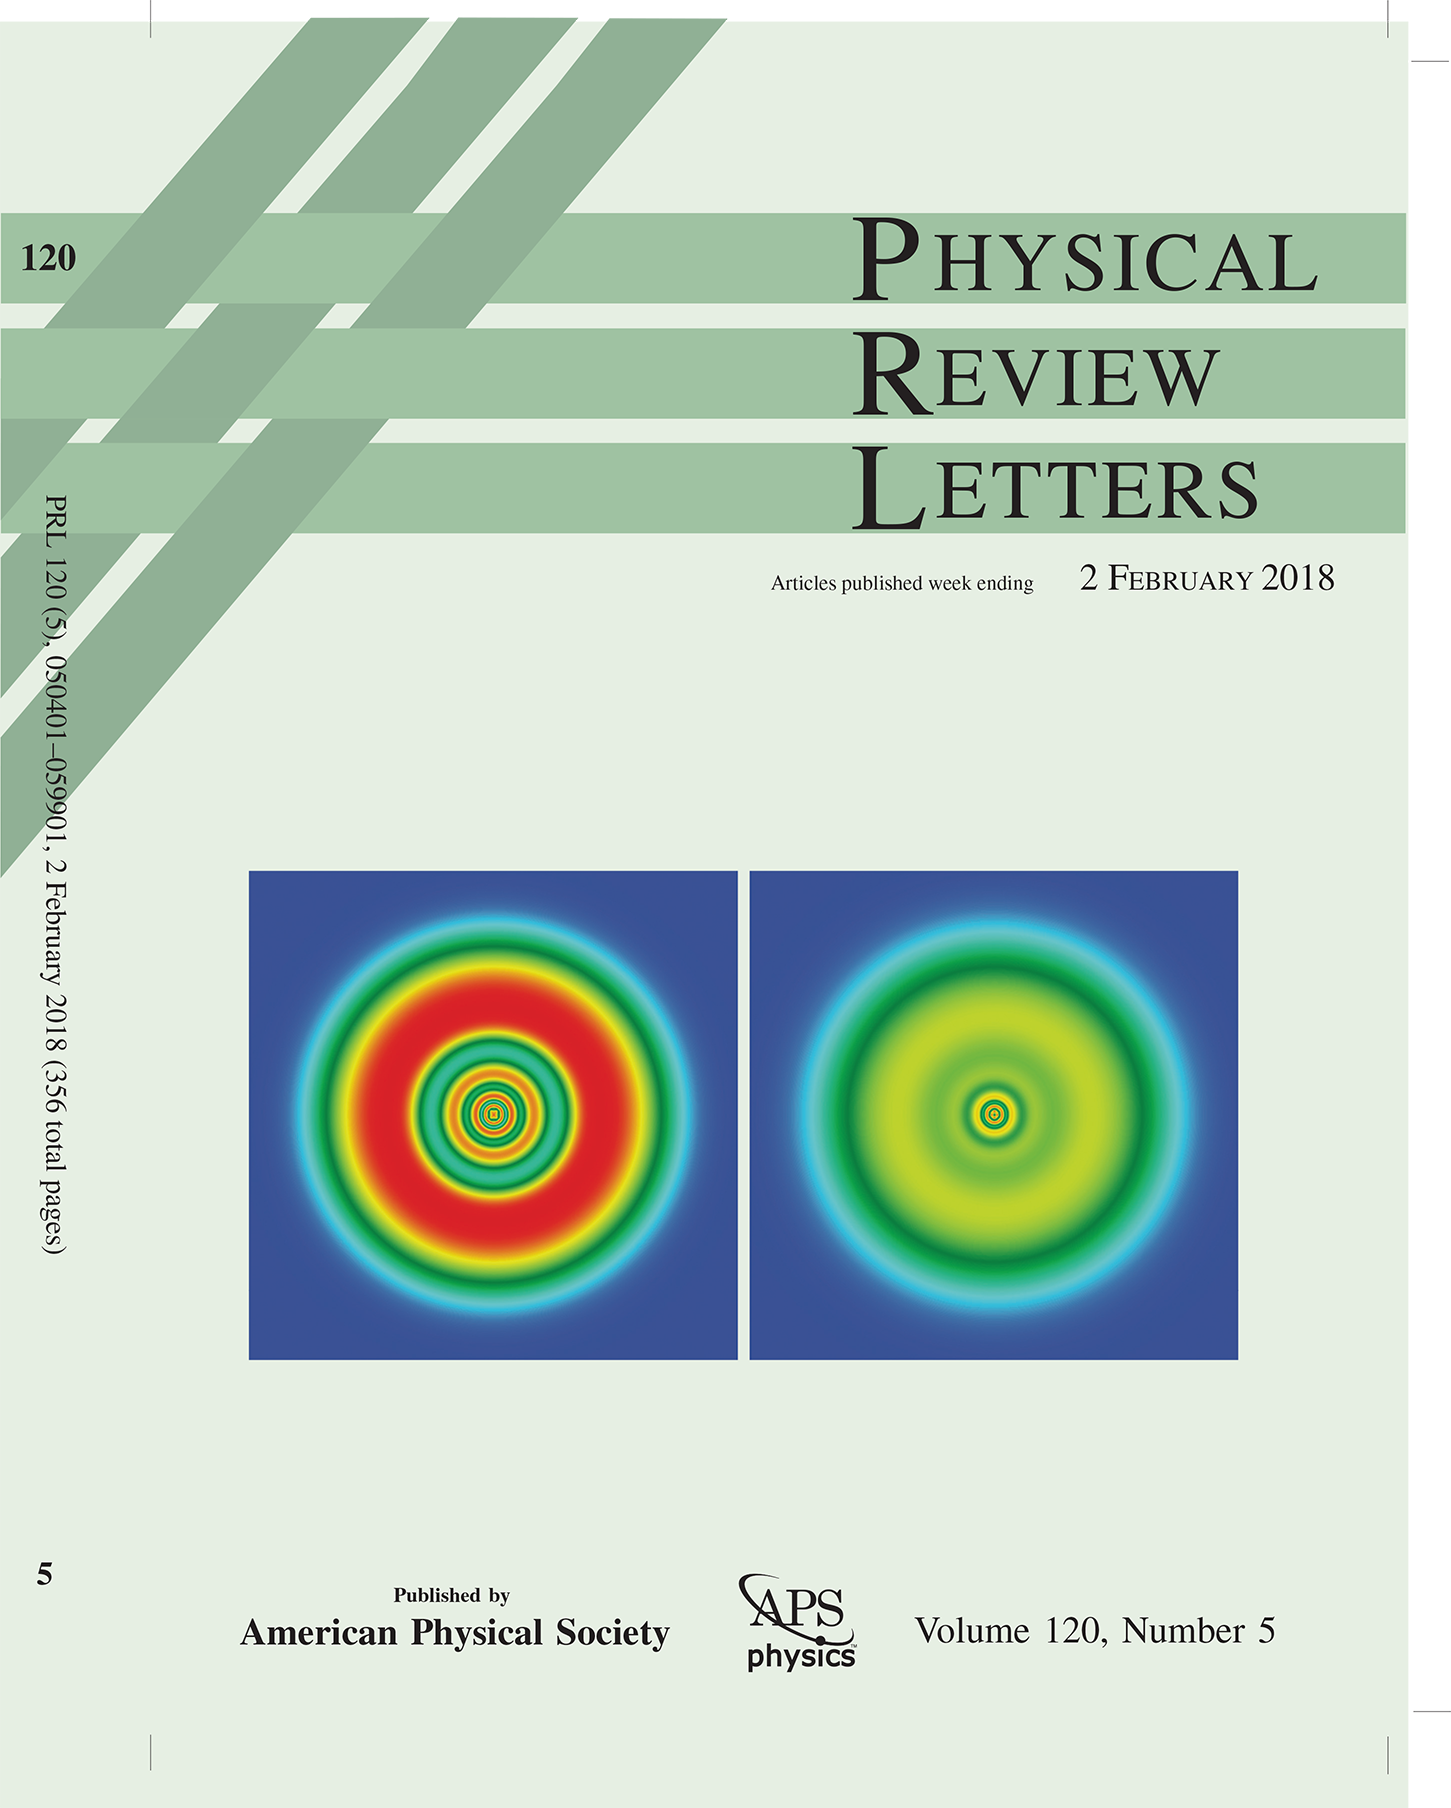 PhysRevLett Cover